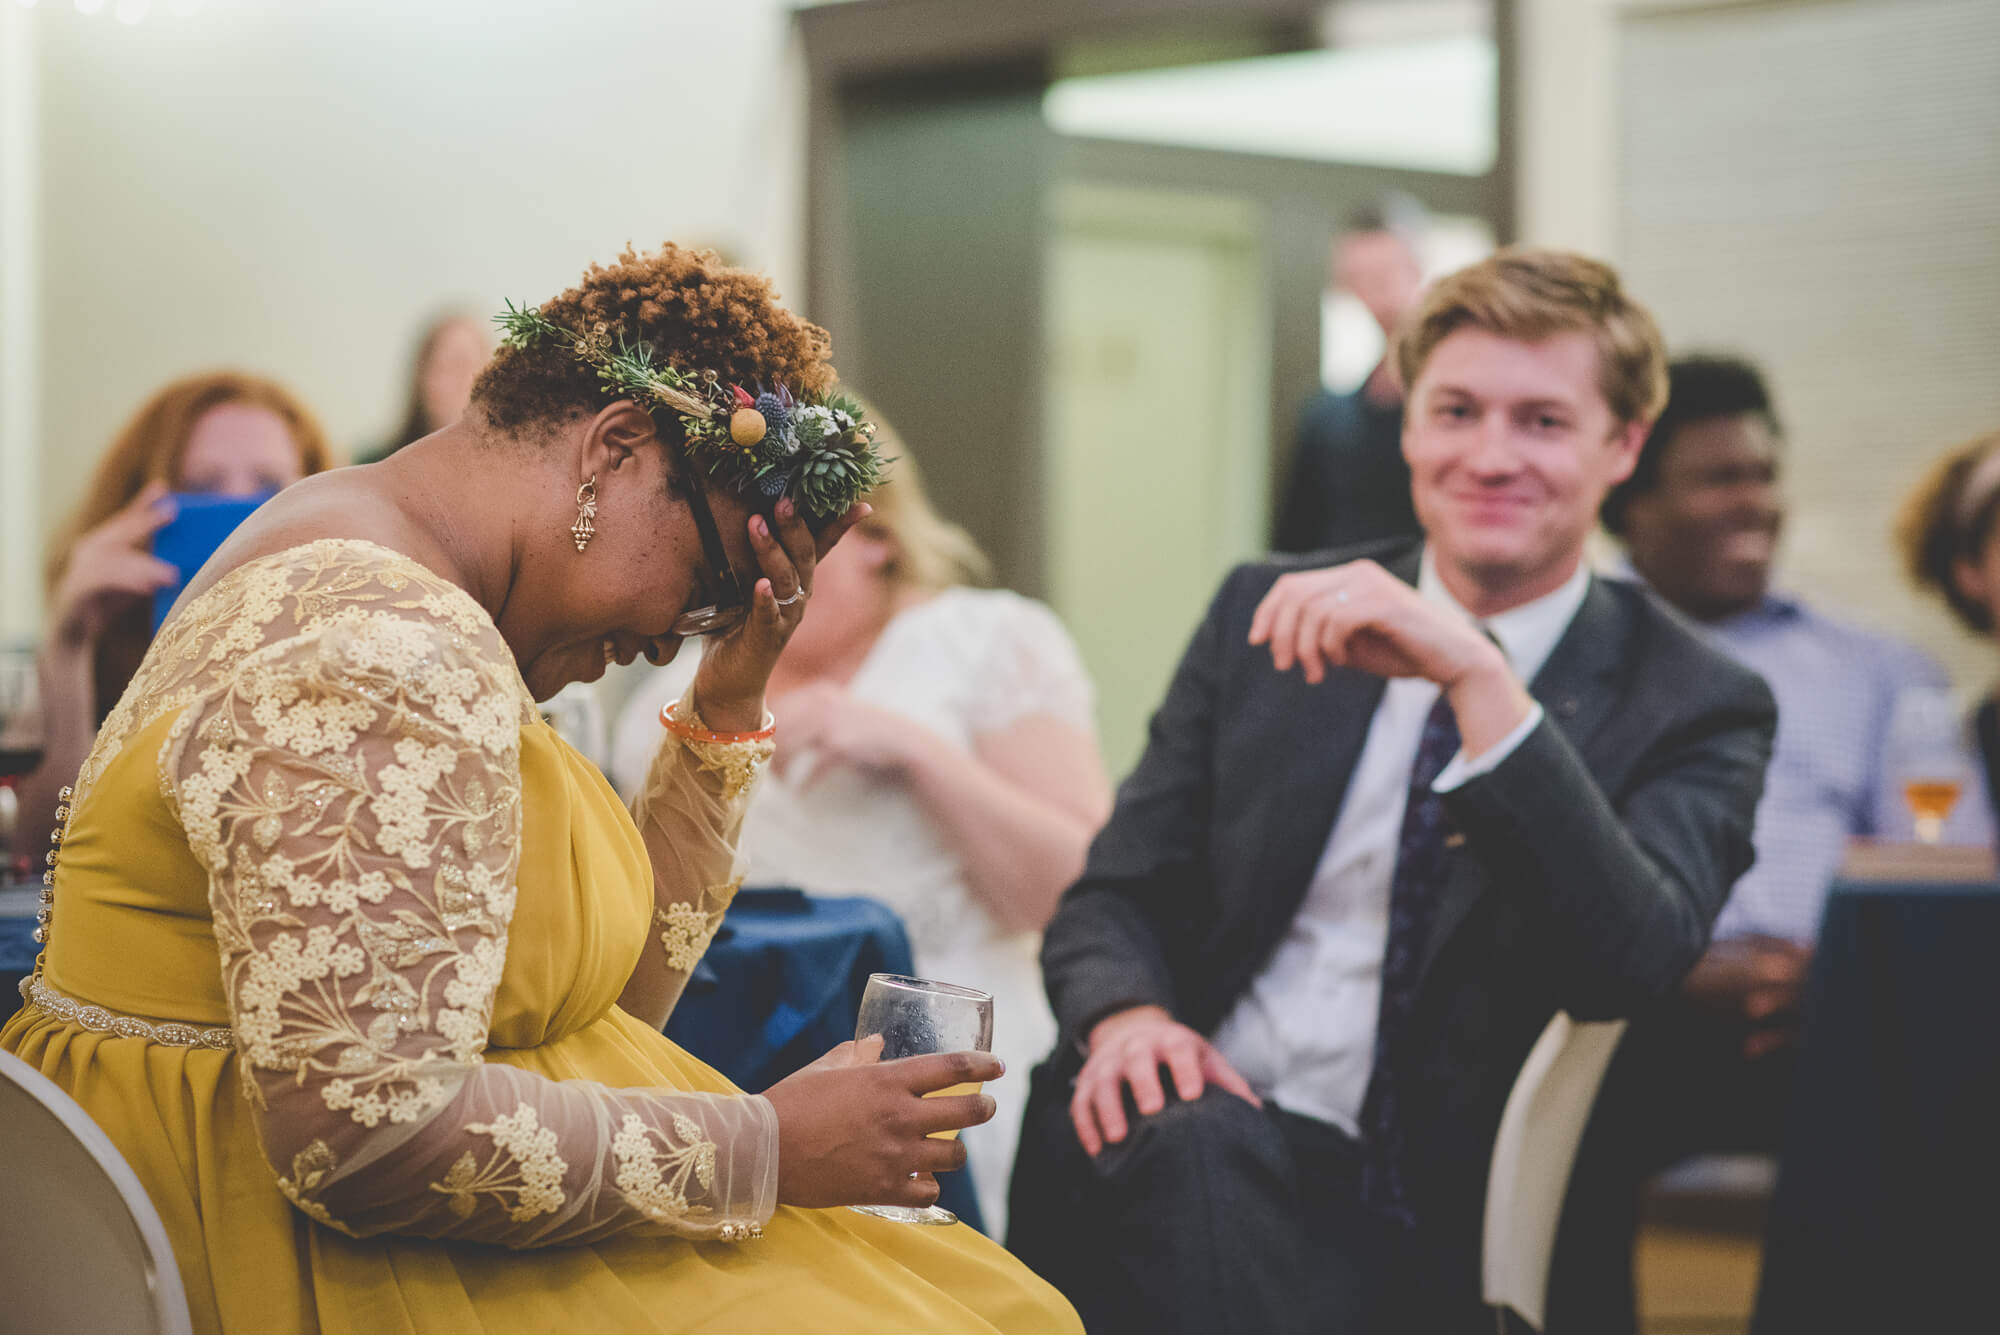 bride in yellow wedding dress with long lace sleeves and succulent headpiece laughing during toasts at wedding reception